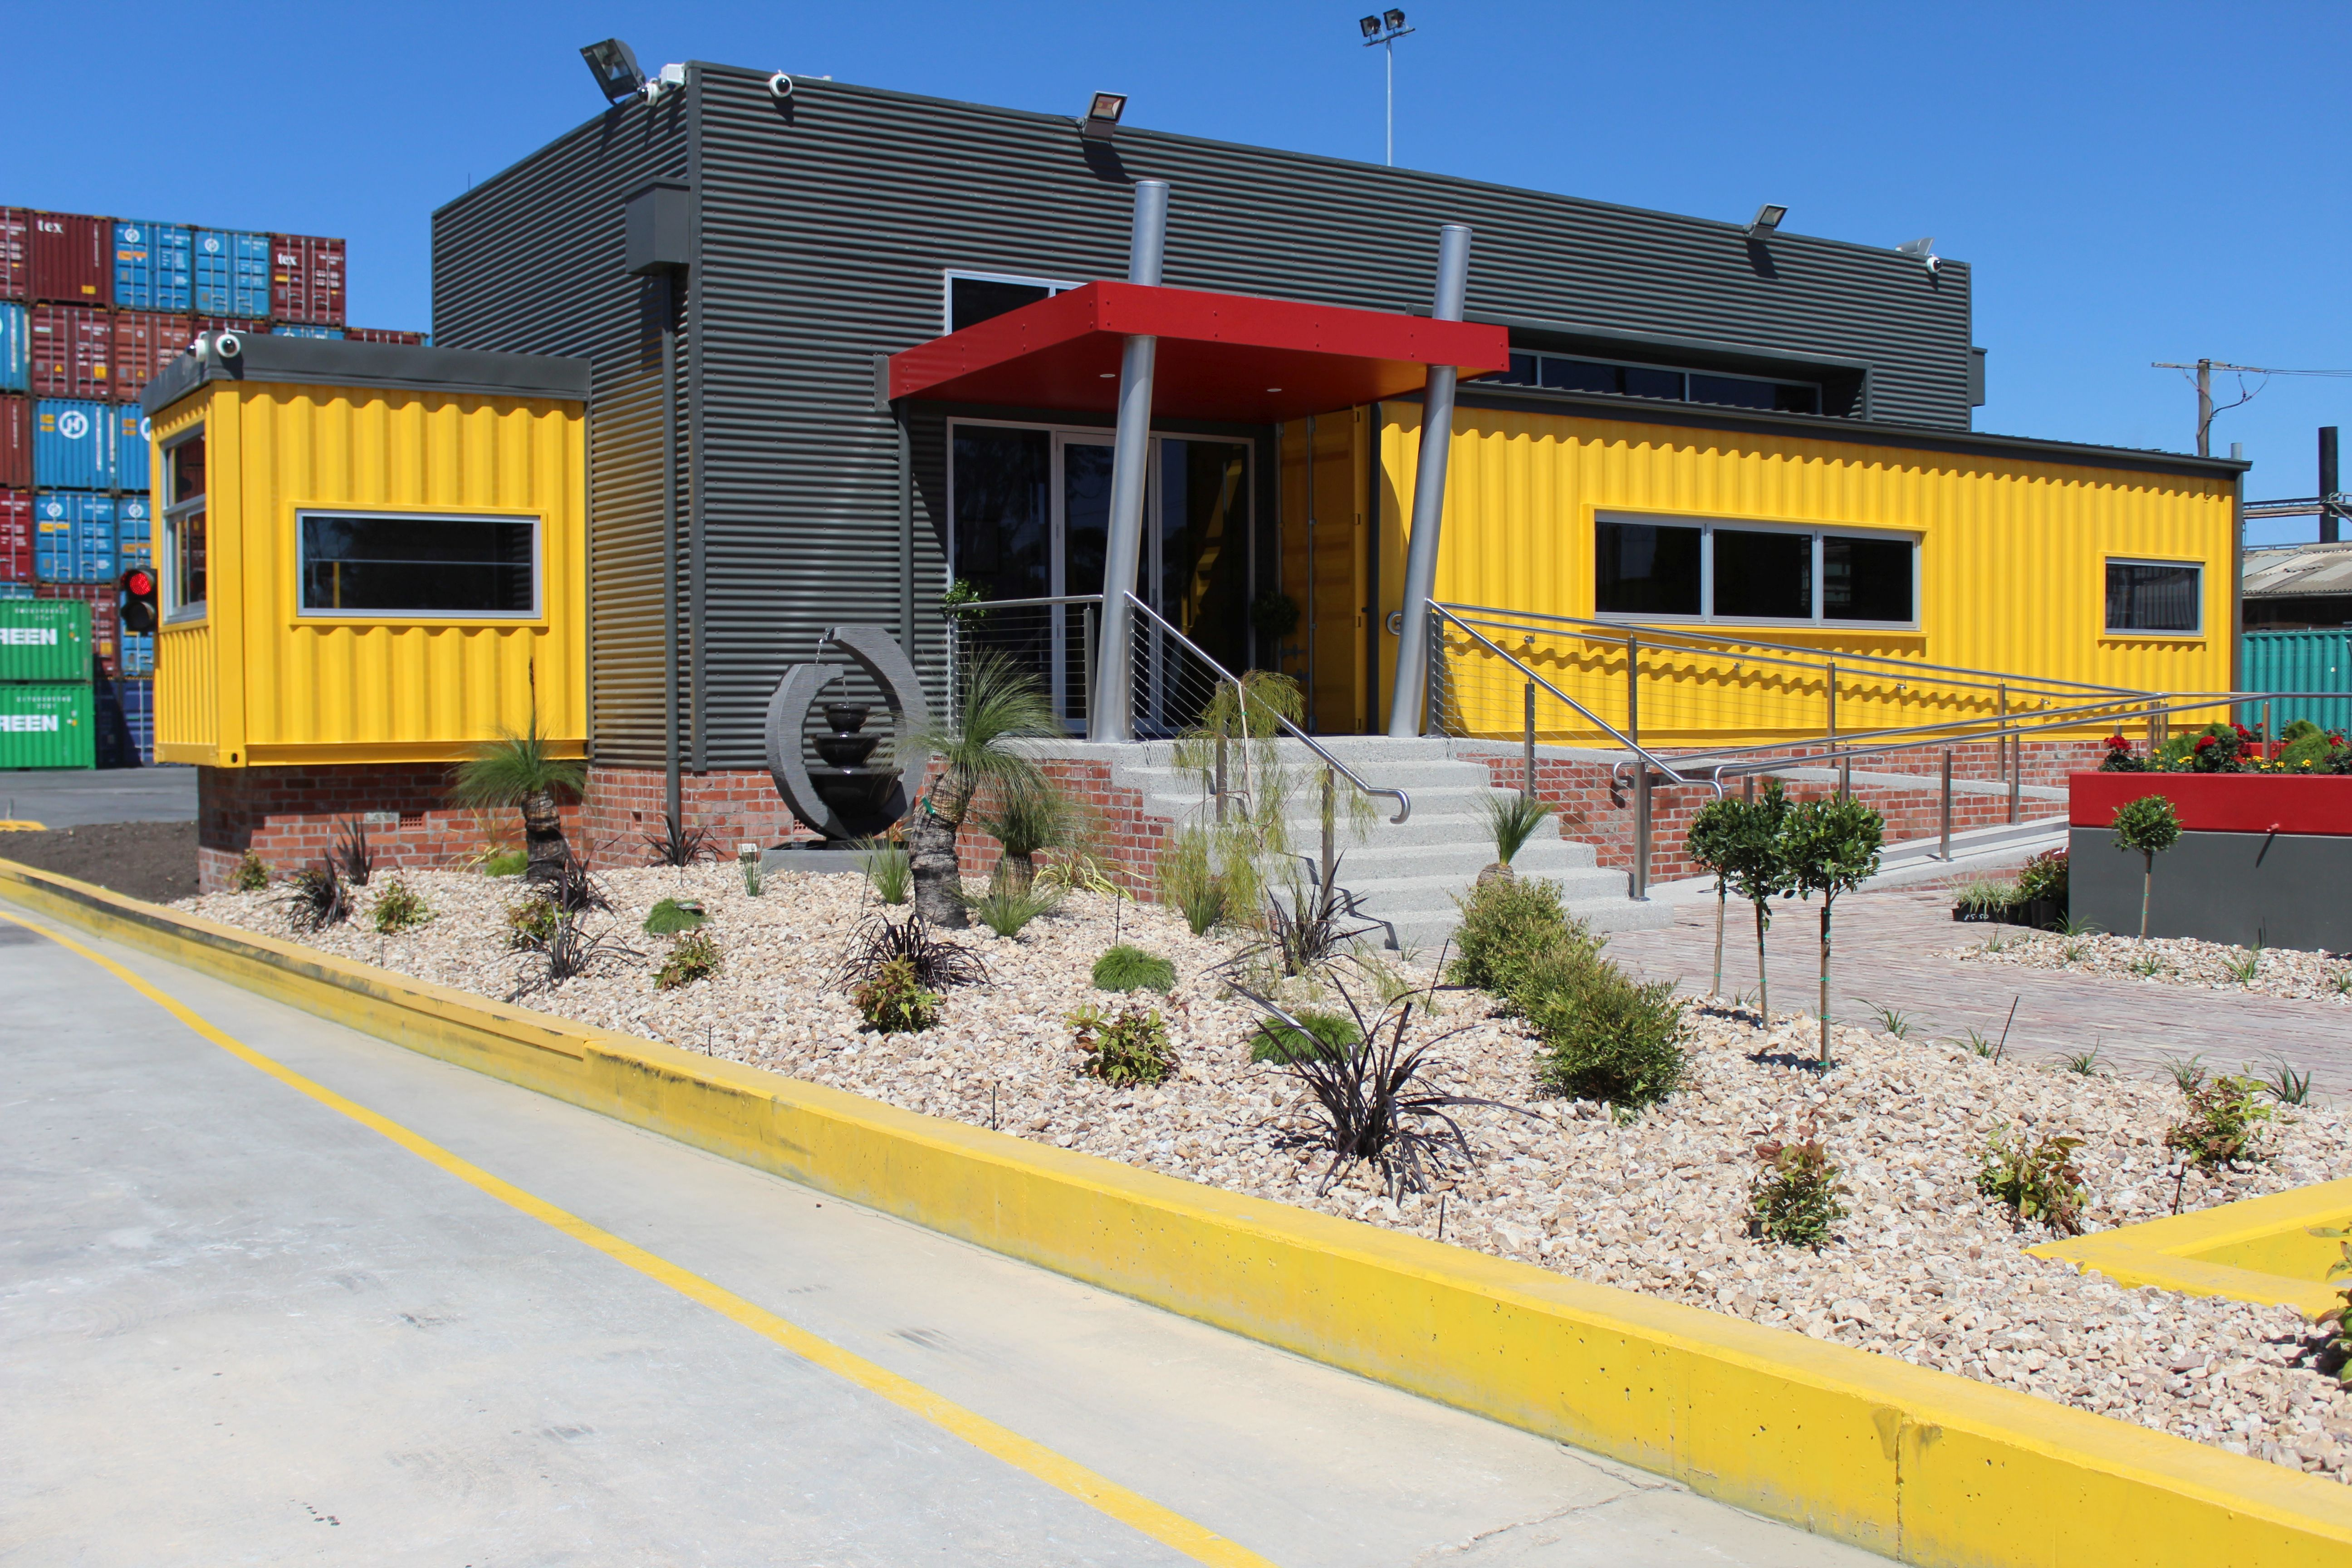 Containerspace, A Container Storage U0026 Repair Yard In Australia Has  Constructed Its Office From Shipping